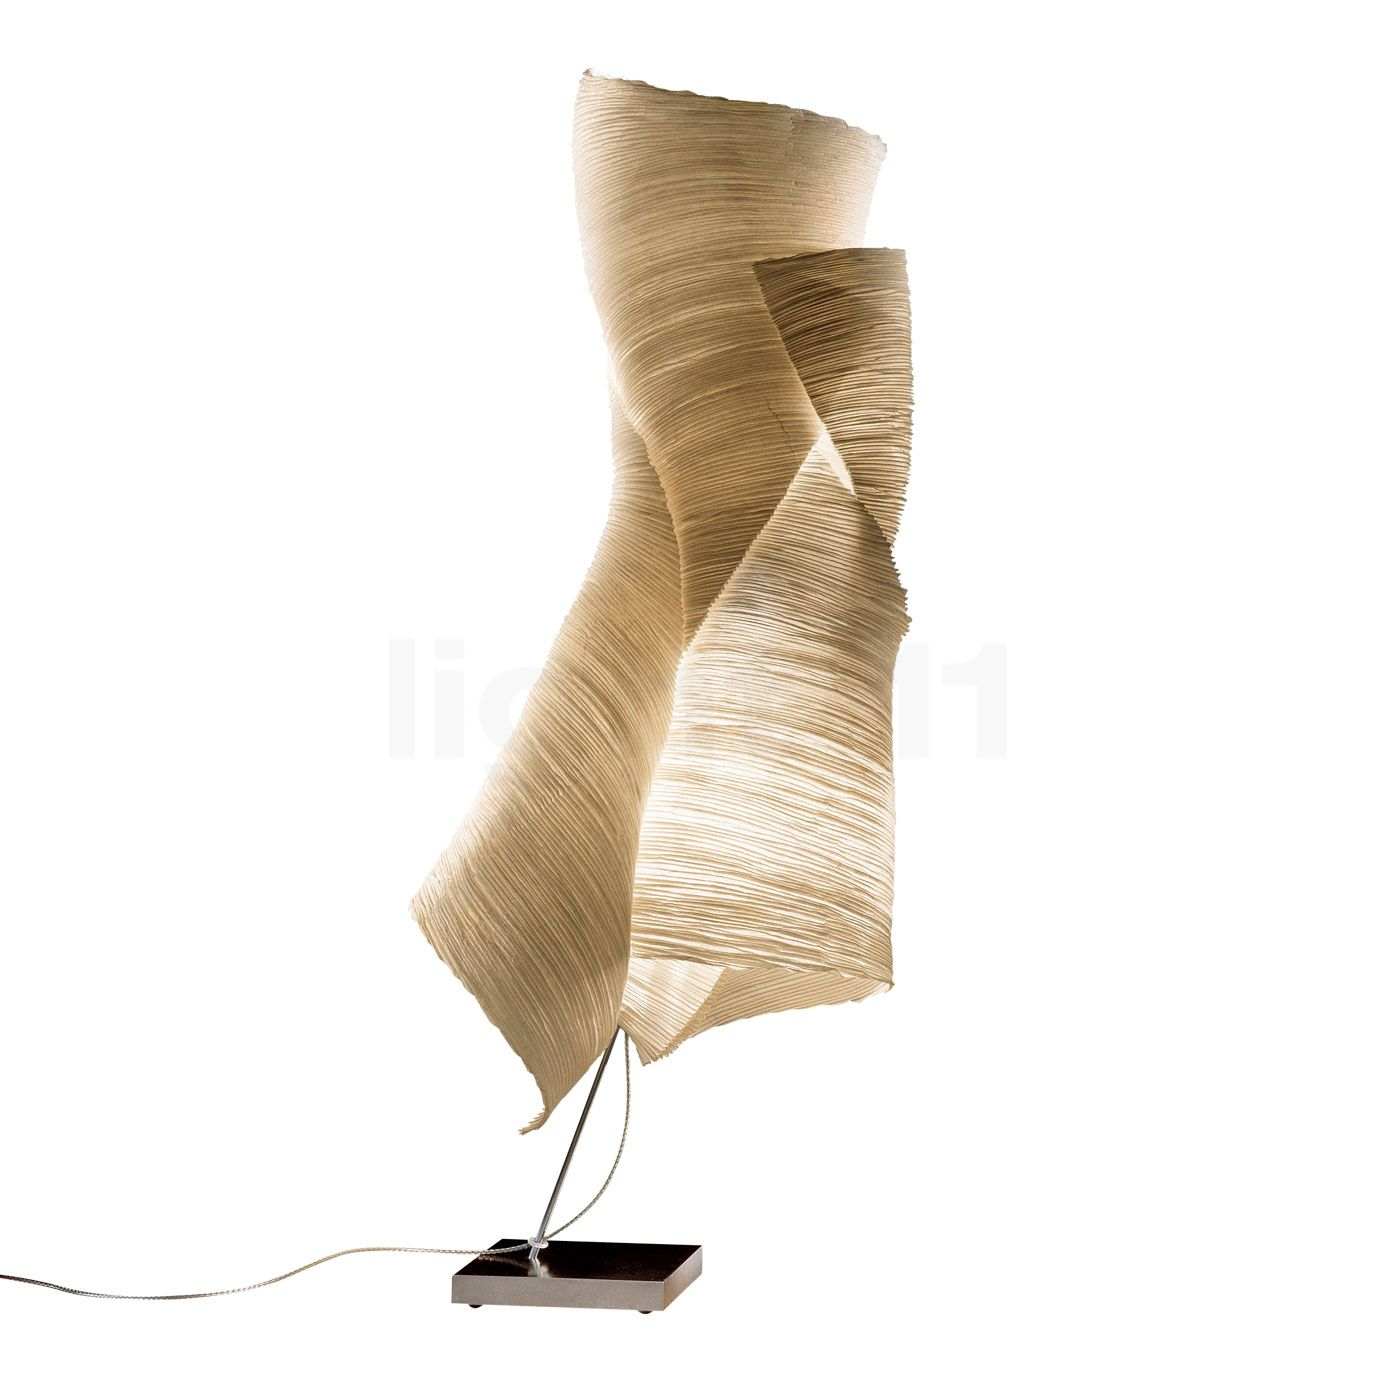 ingo maurer ysmen floor lamps buy at. Black Bedroom Furniture Sets. Home Design Ideas